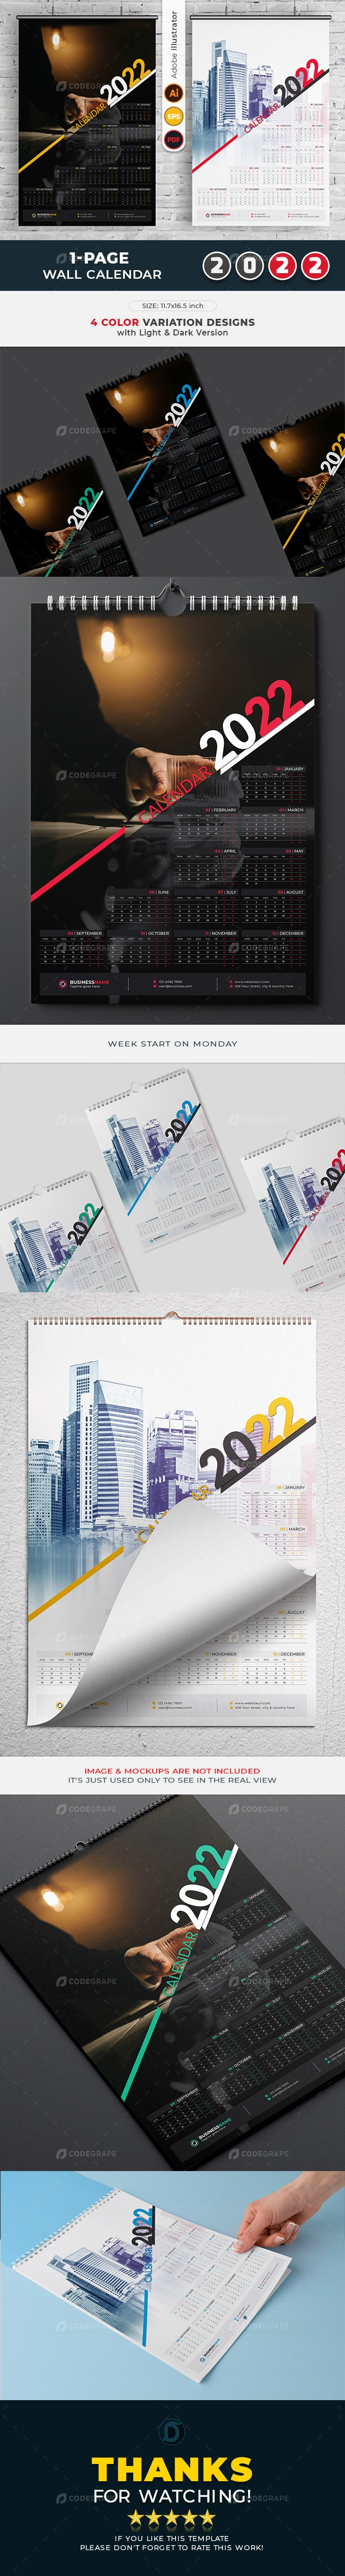 1-Page Wall Calendar 2022 template